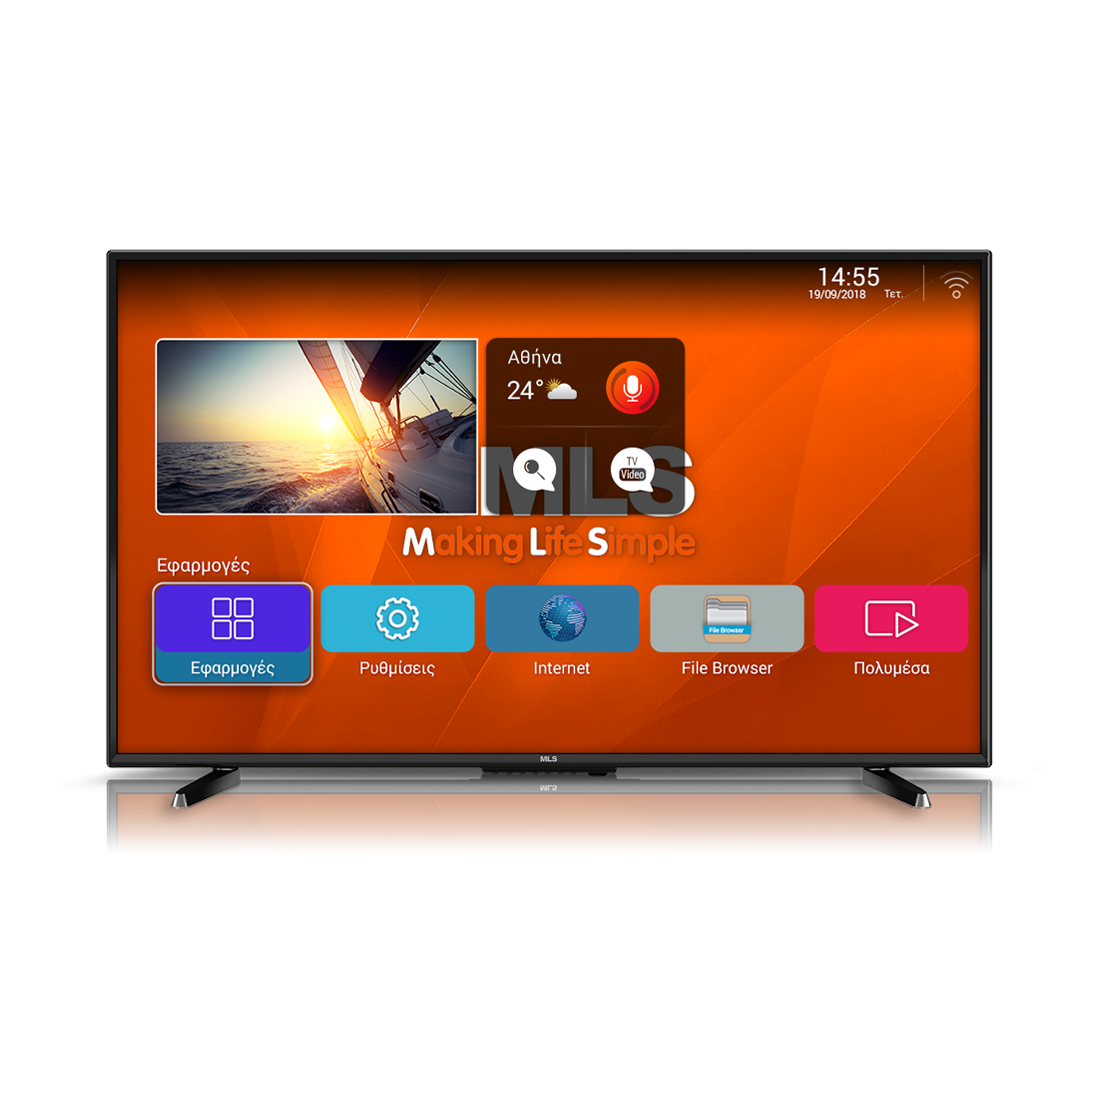 MLS SuperSmart TV 32 2018